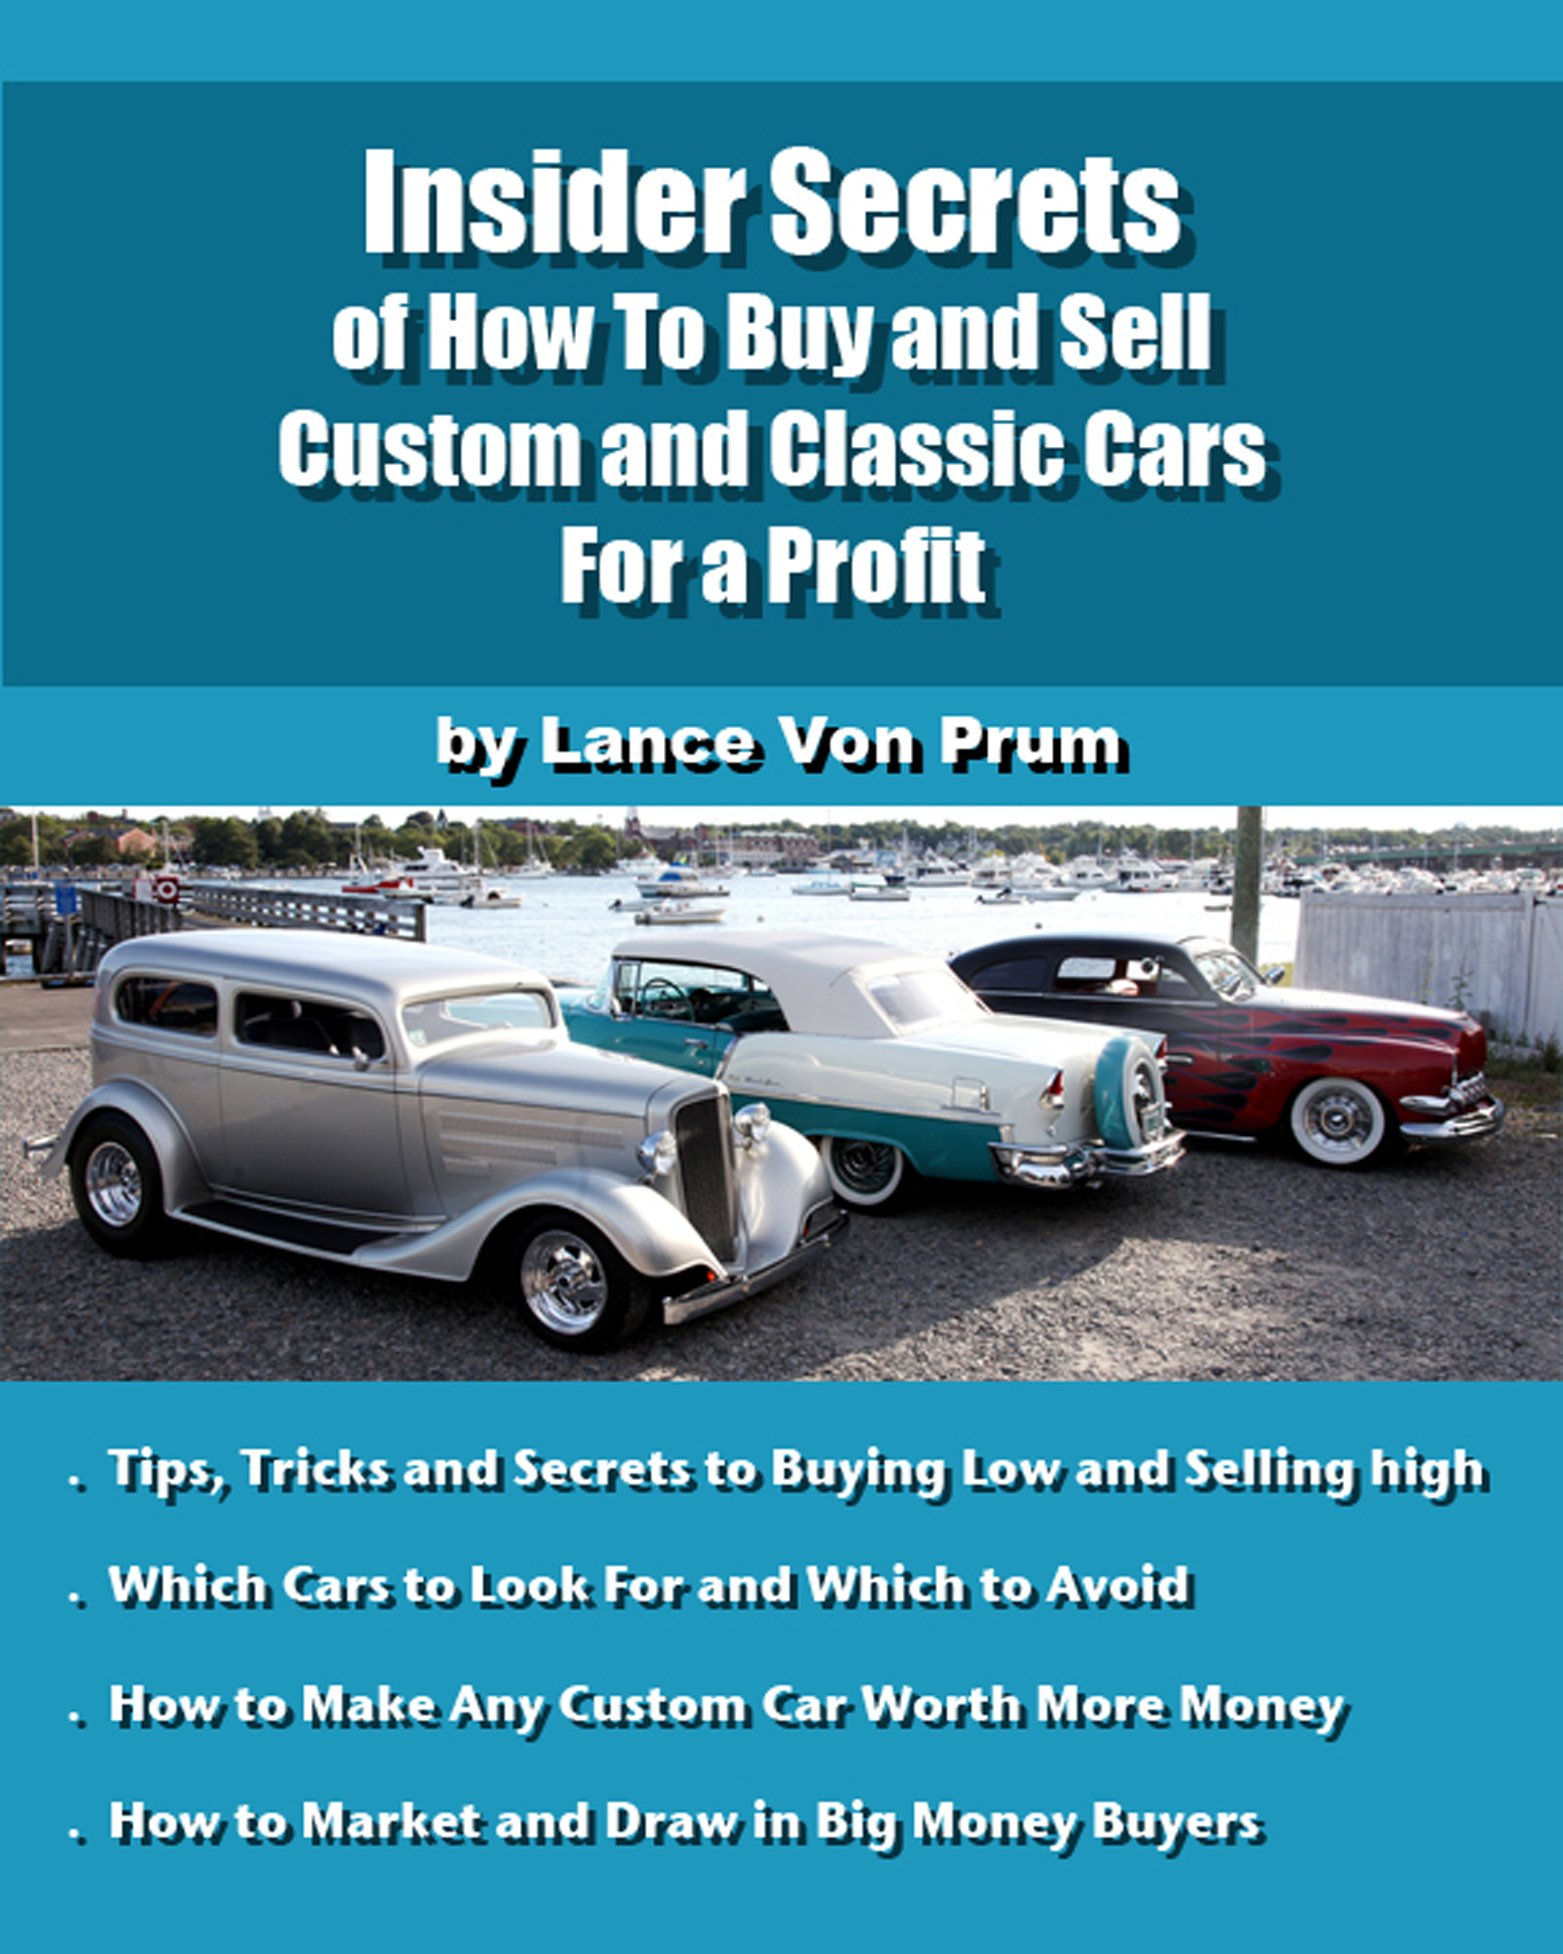 insider secrets of how to sell custom and classic cars for profit tips tricks